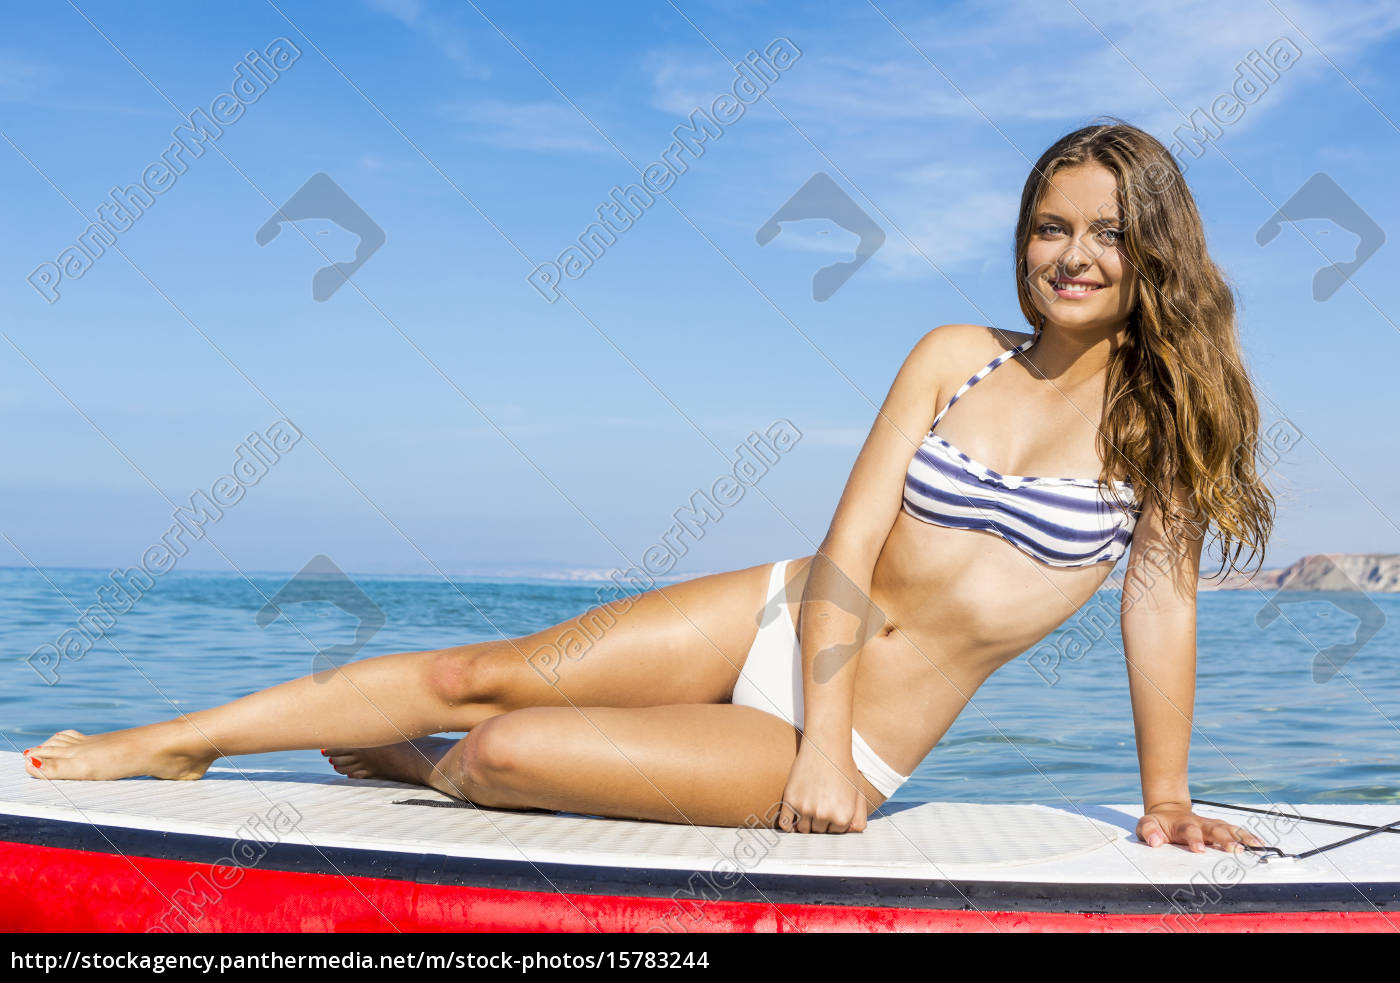 woman, sitting, over, a, paddle, surfboard - 15783244